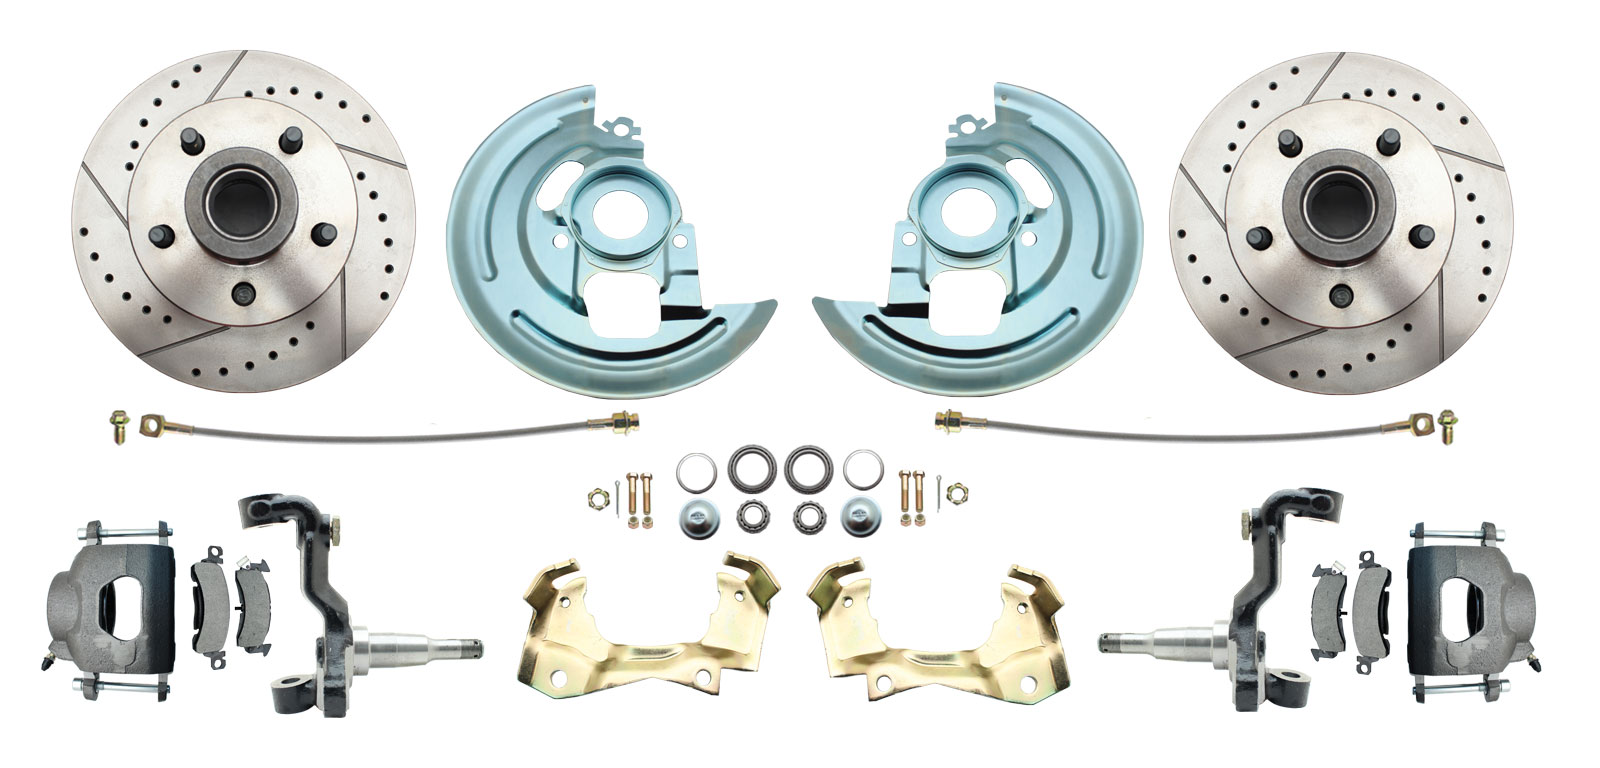 1964-1972 GM A Body (Chevelle, GTO, Cutlass) Stock Height Front Disc Brake Kit W/ Drilled & Slotted Rotors